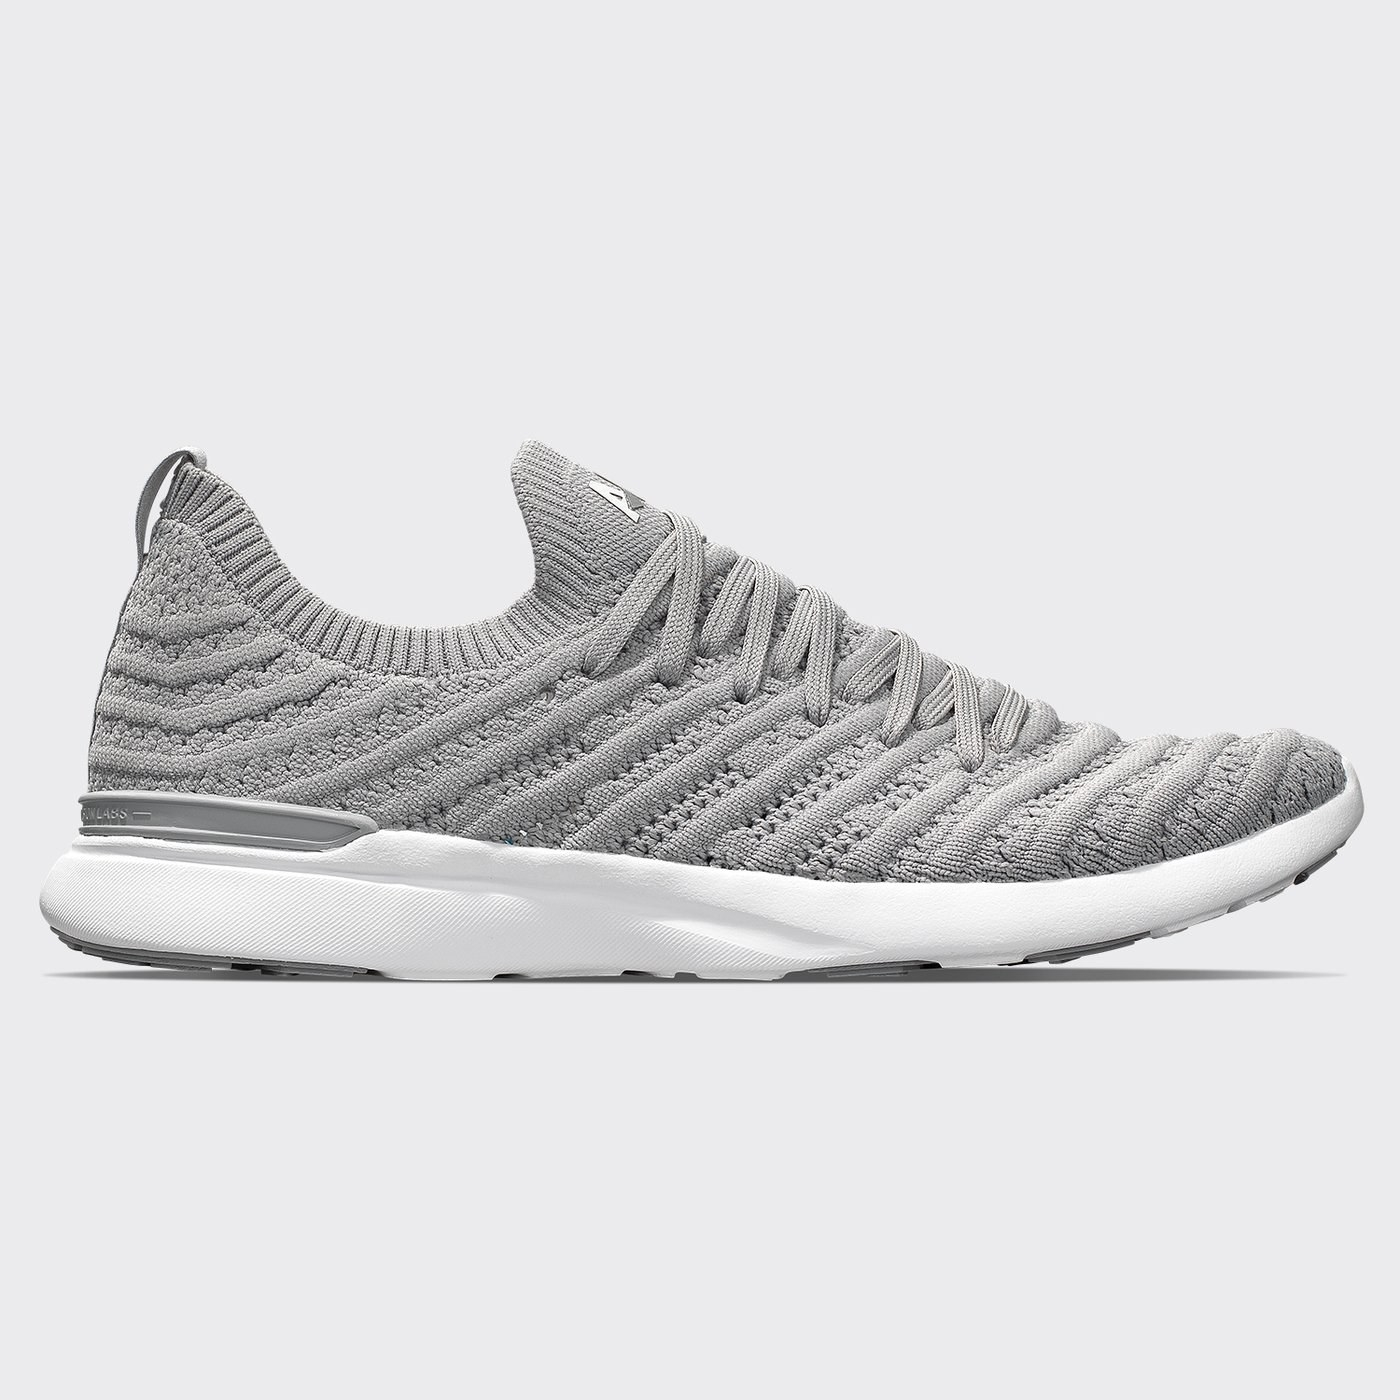 The knit sneaker in grey with grey laces and a white sole